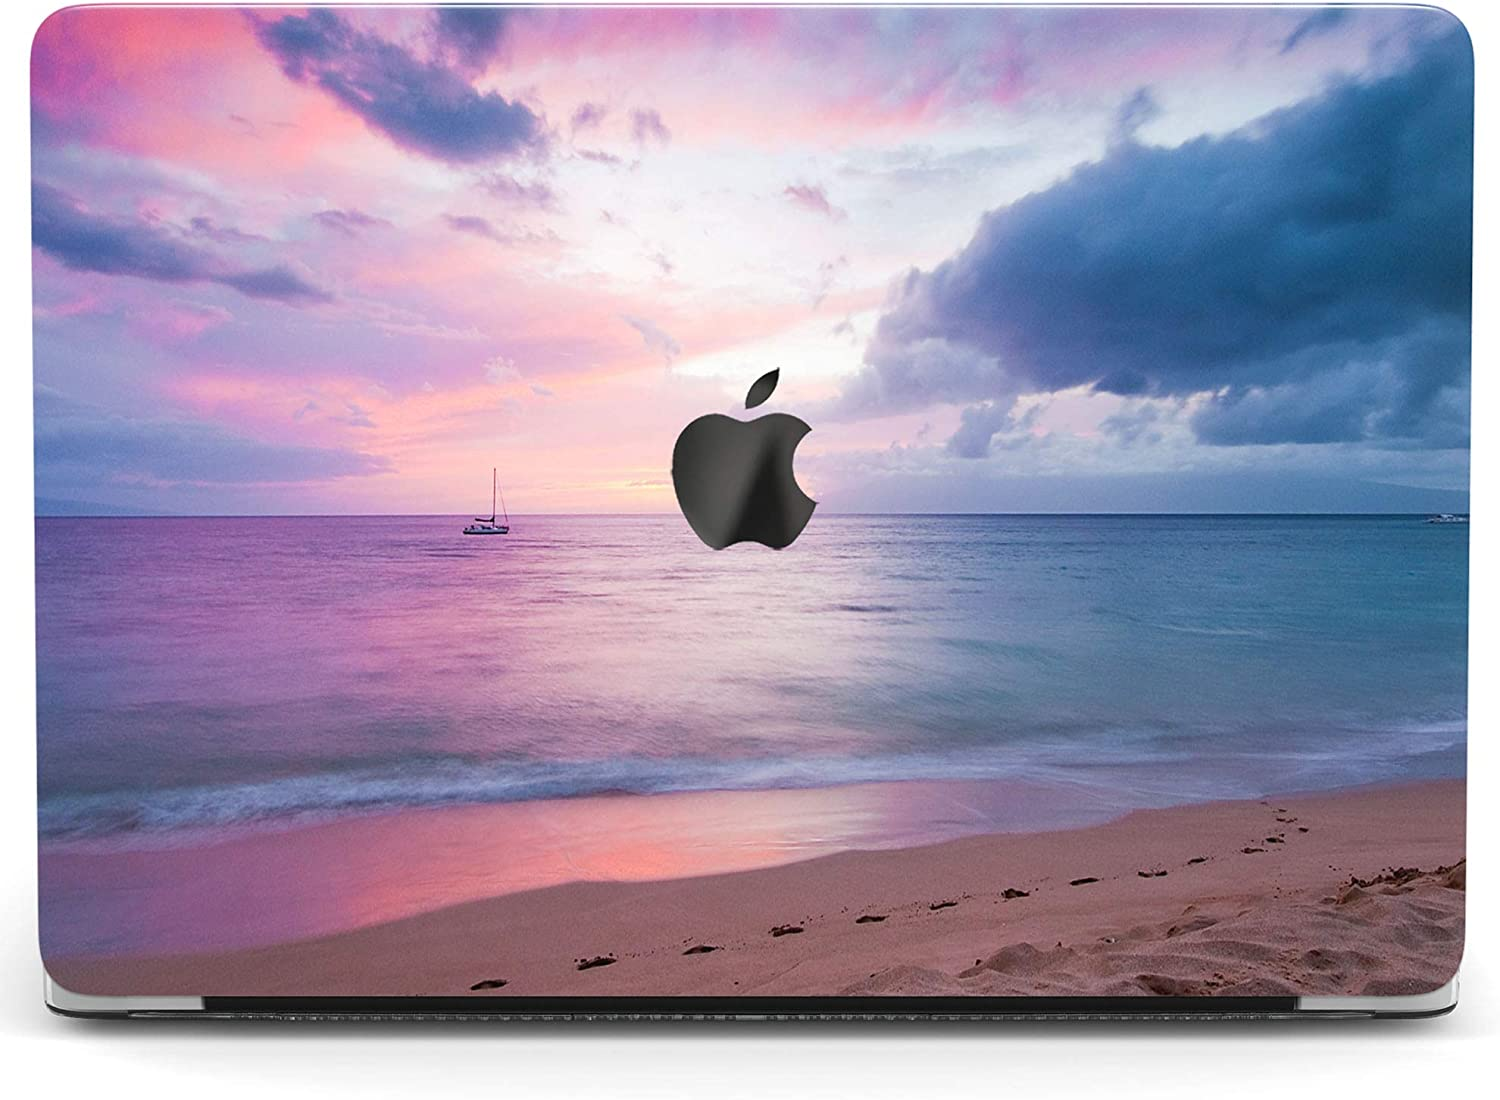 Wonder Wild Case for MacBook Air 13 inch Pro 15 2019 2018 Retina 12 11 Apple Hard Mac Protective Cover Touch Bar 2017 2016 2020 Plastic Laptop Print Colored Sunset Beach Ocean Pink Seaside Sky Purple